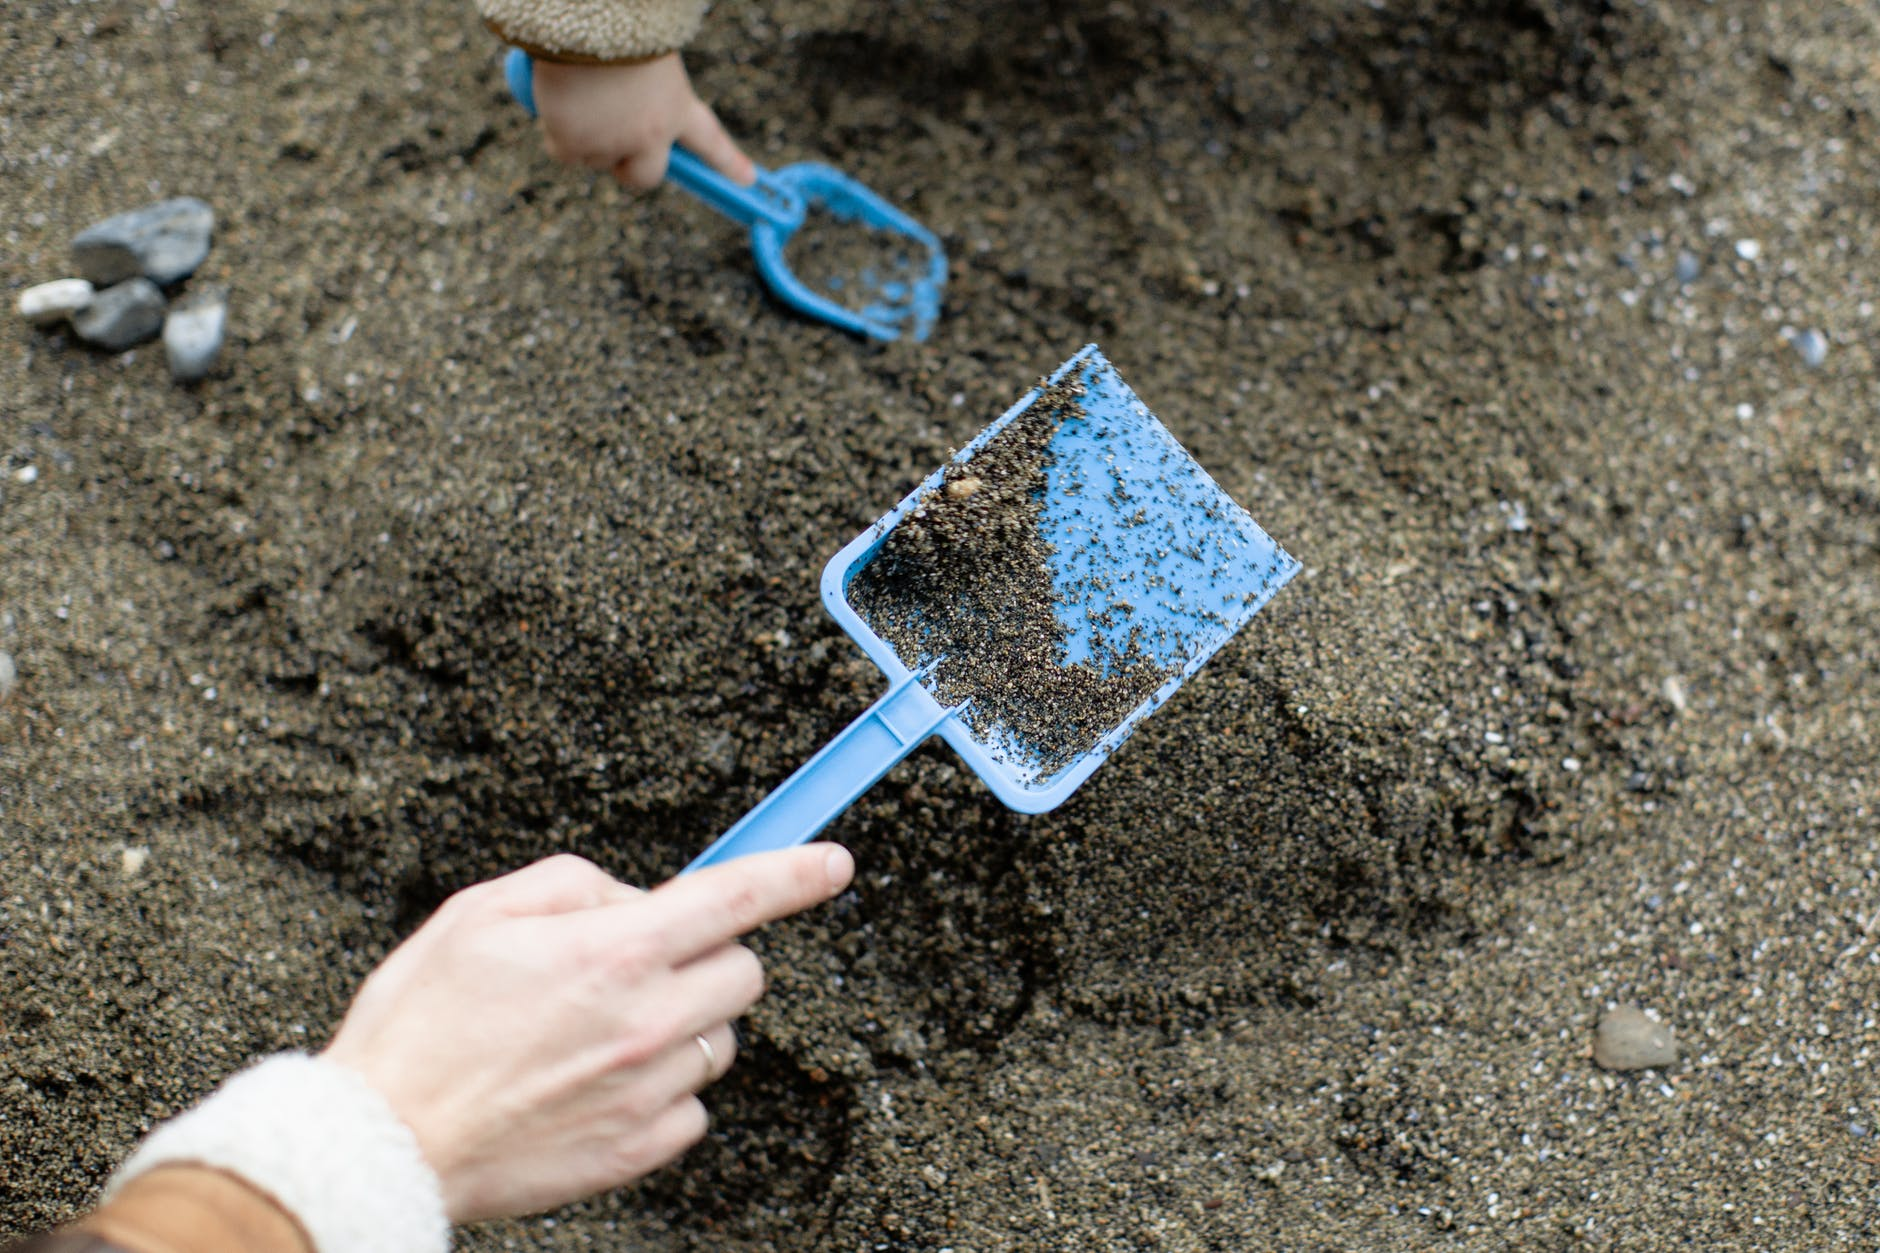 crop faceless mother with baby playing with plastic shovels in sand